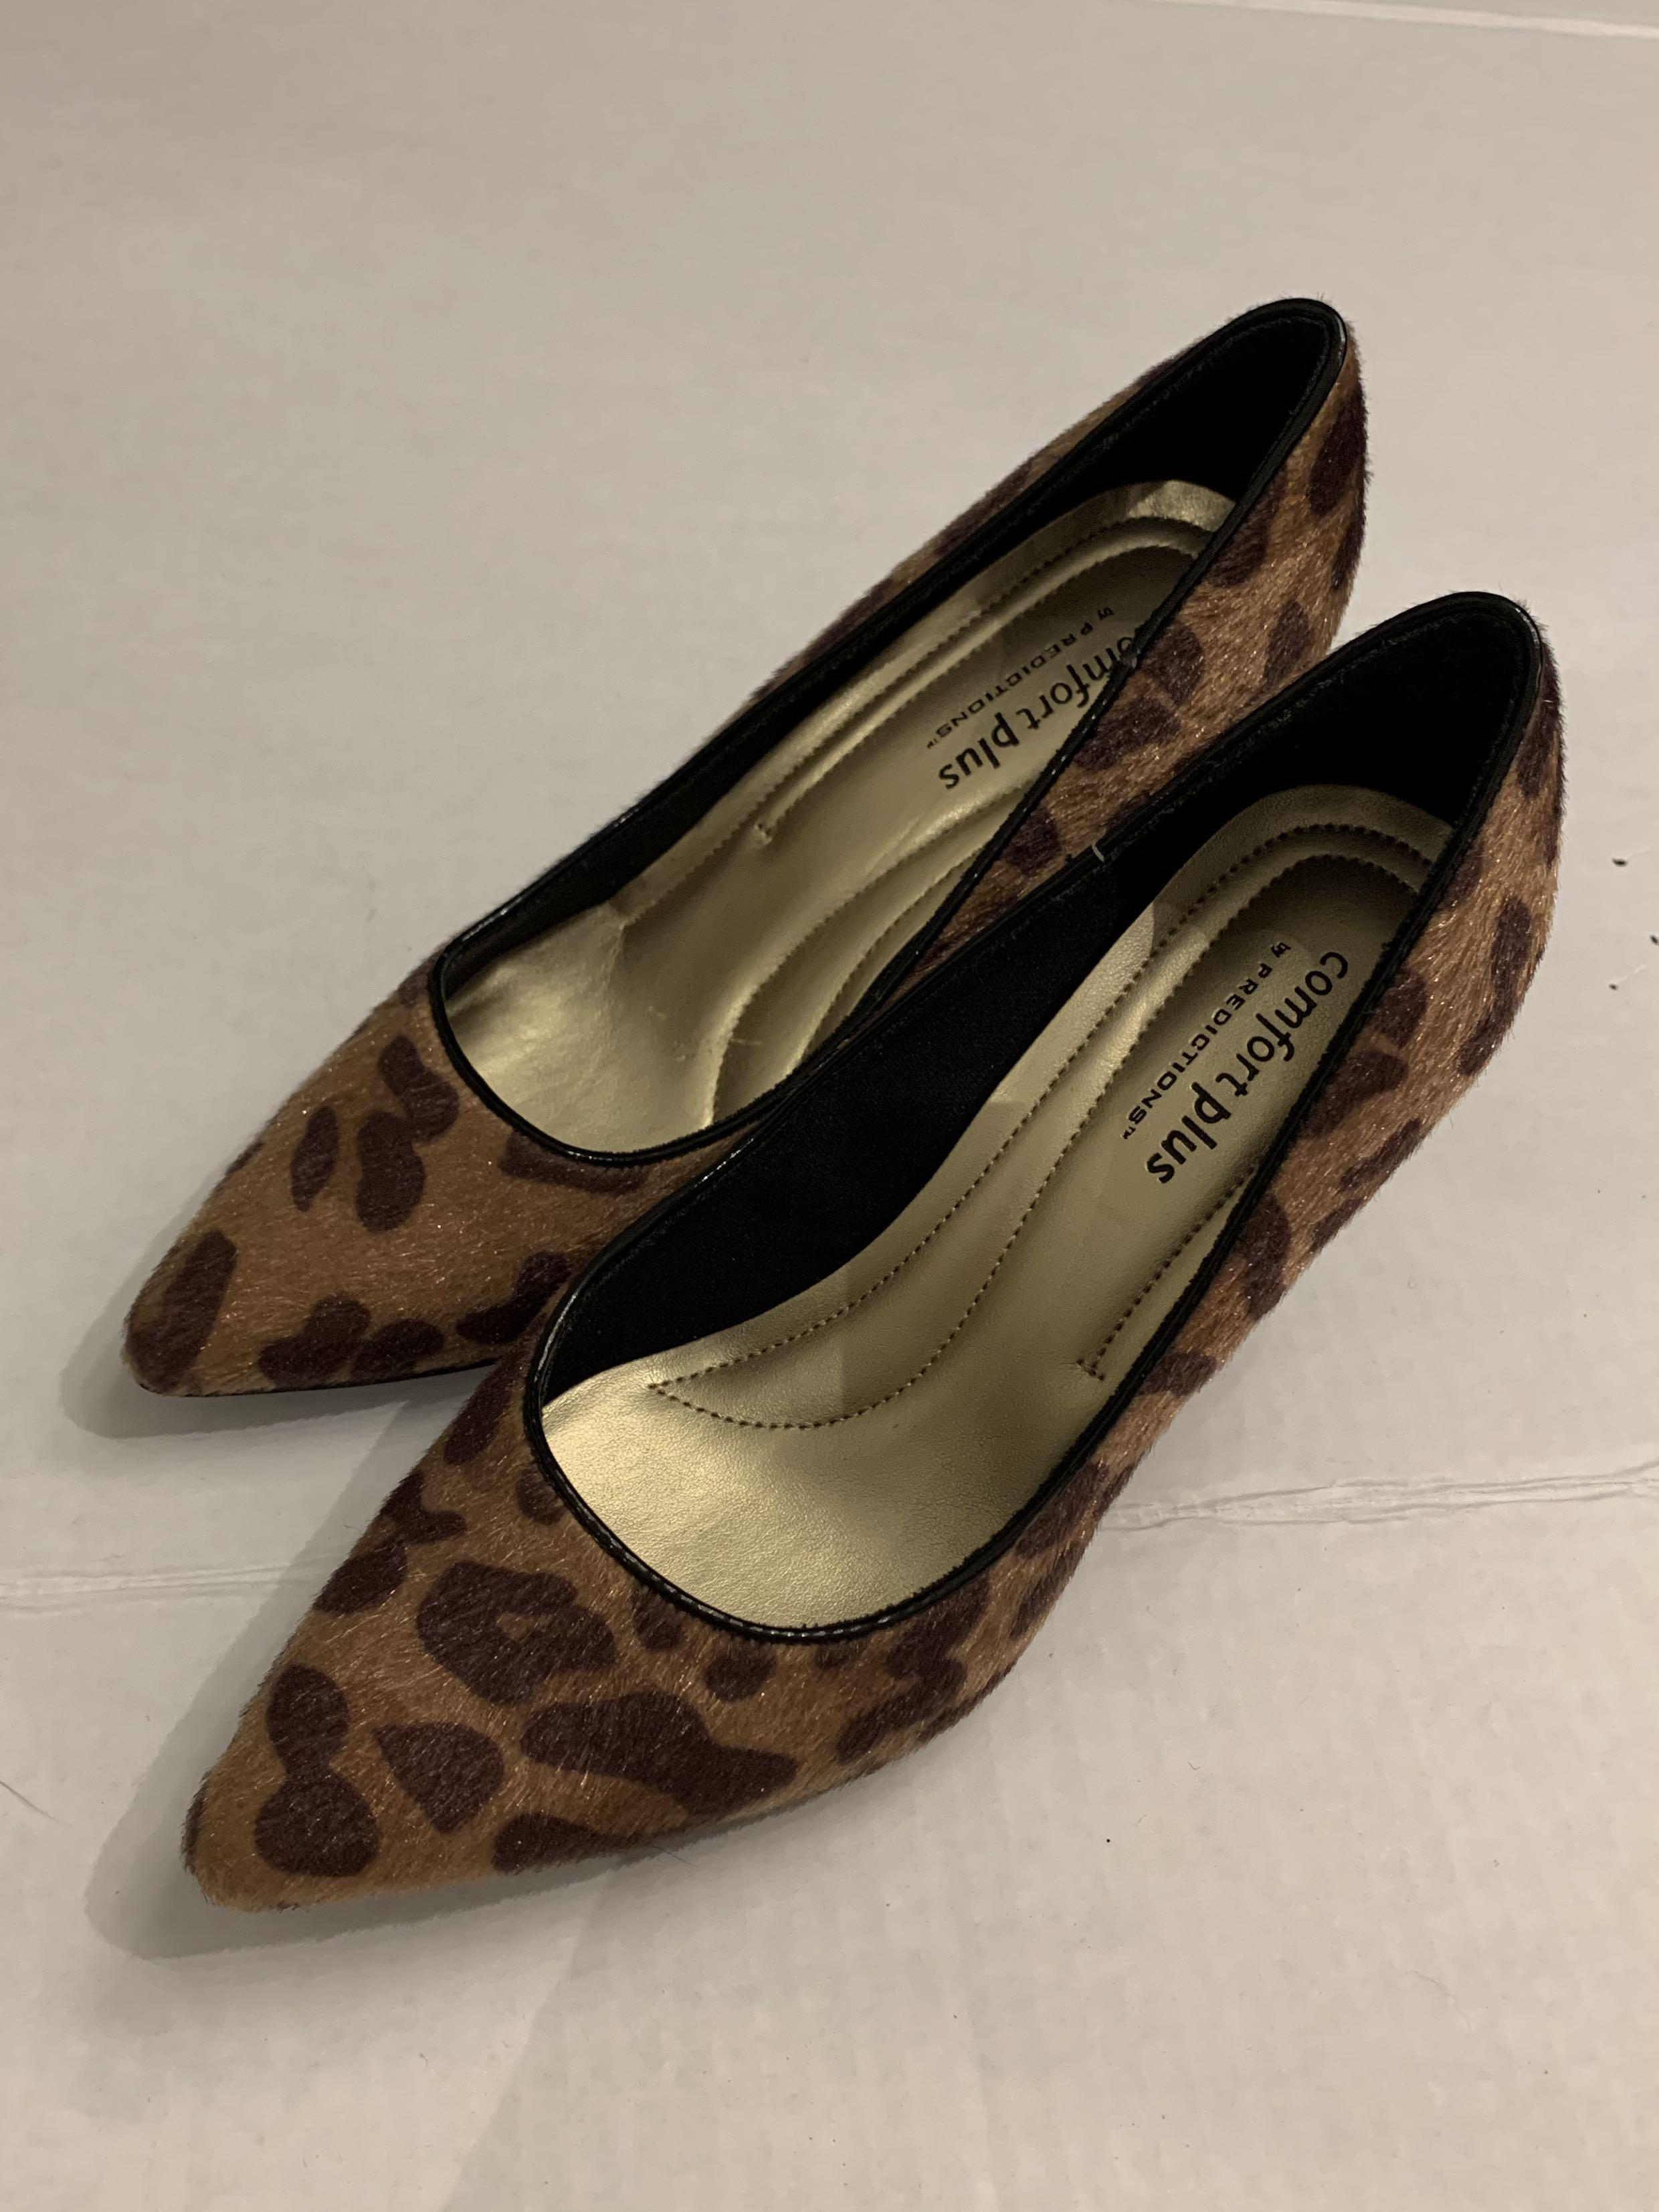 Comfort plus by predictions heels size 5w